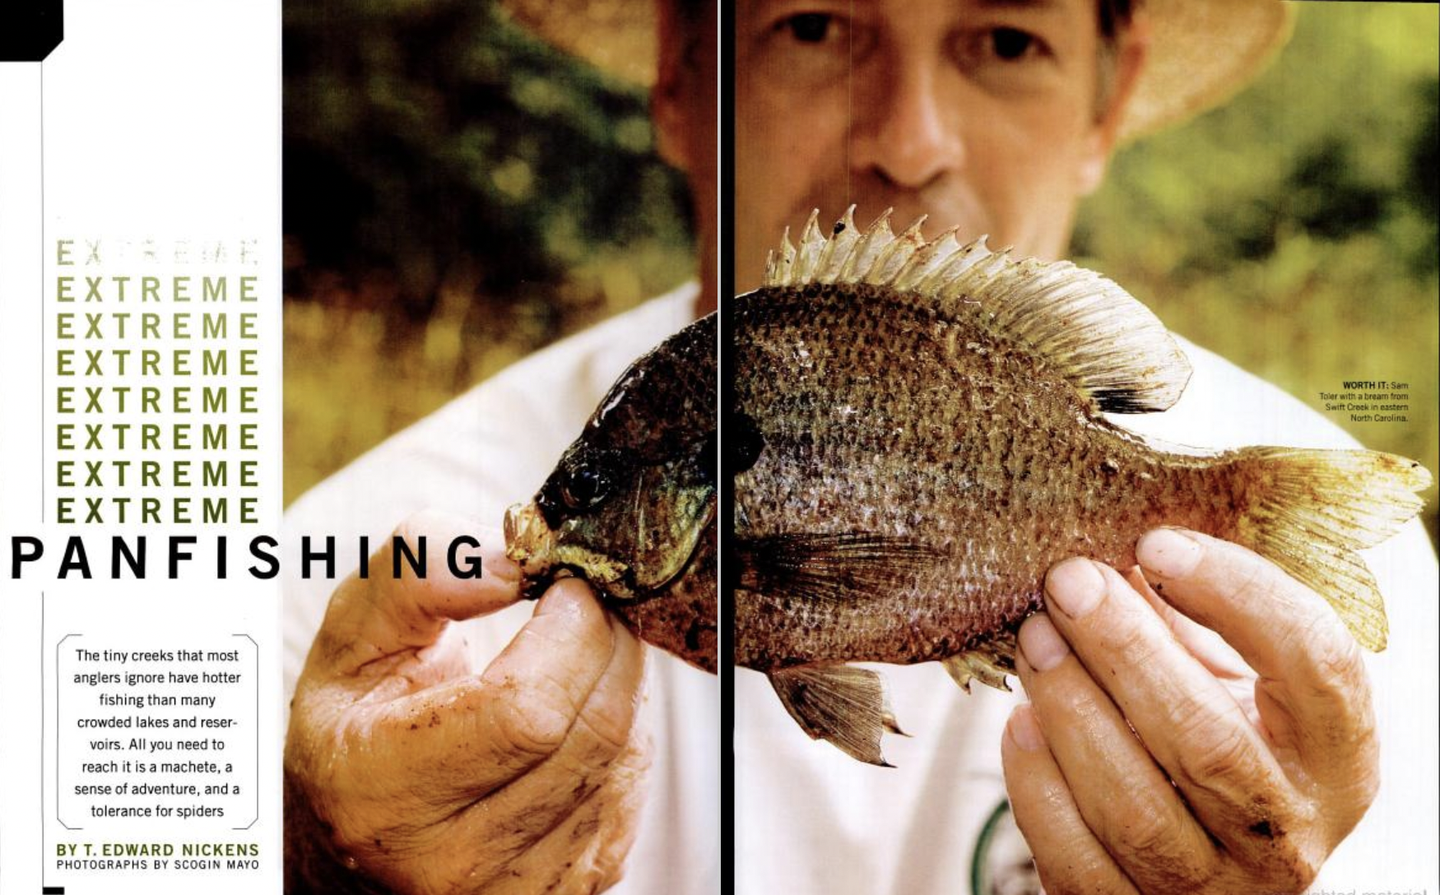 Flyfishing for panfish in the south.